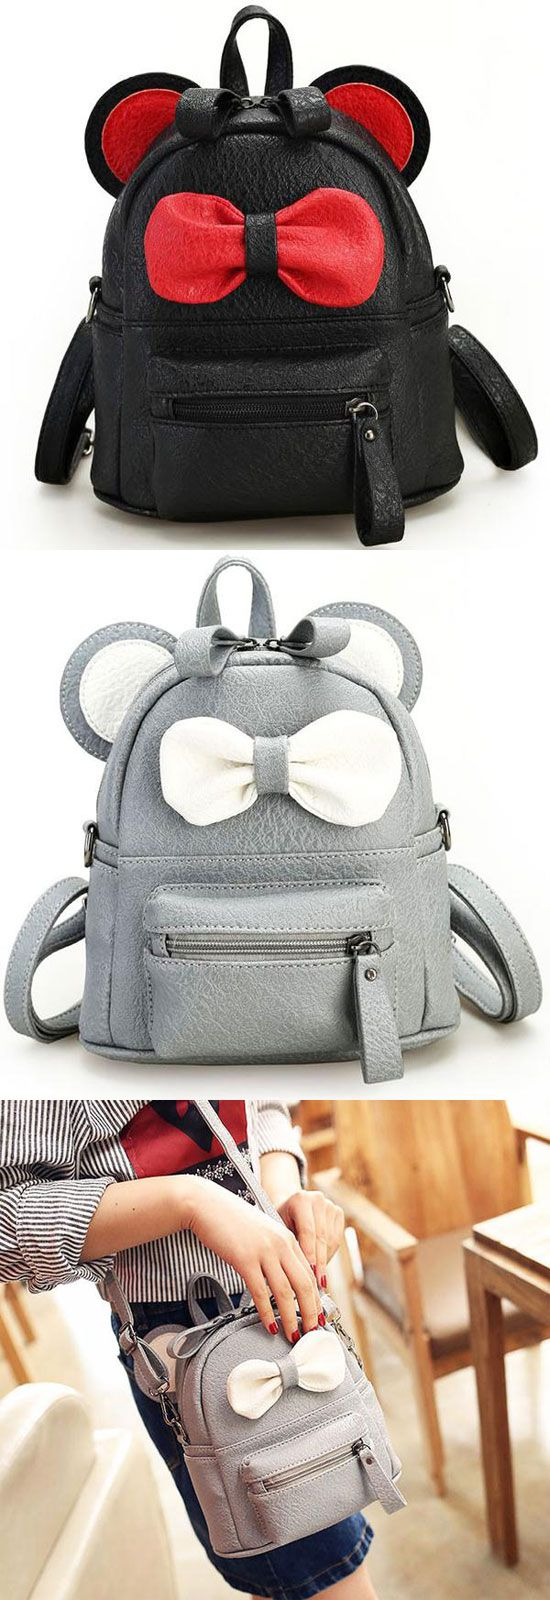 ed0b59d60491 Cute Cartoon School Mini Bow Kitty Ears PU Backpacks